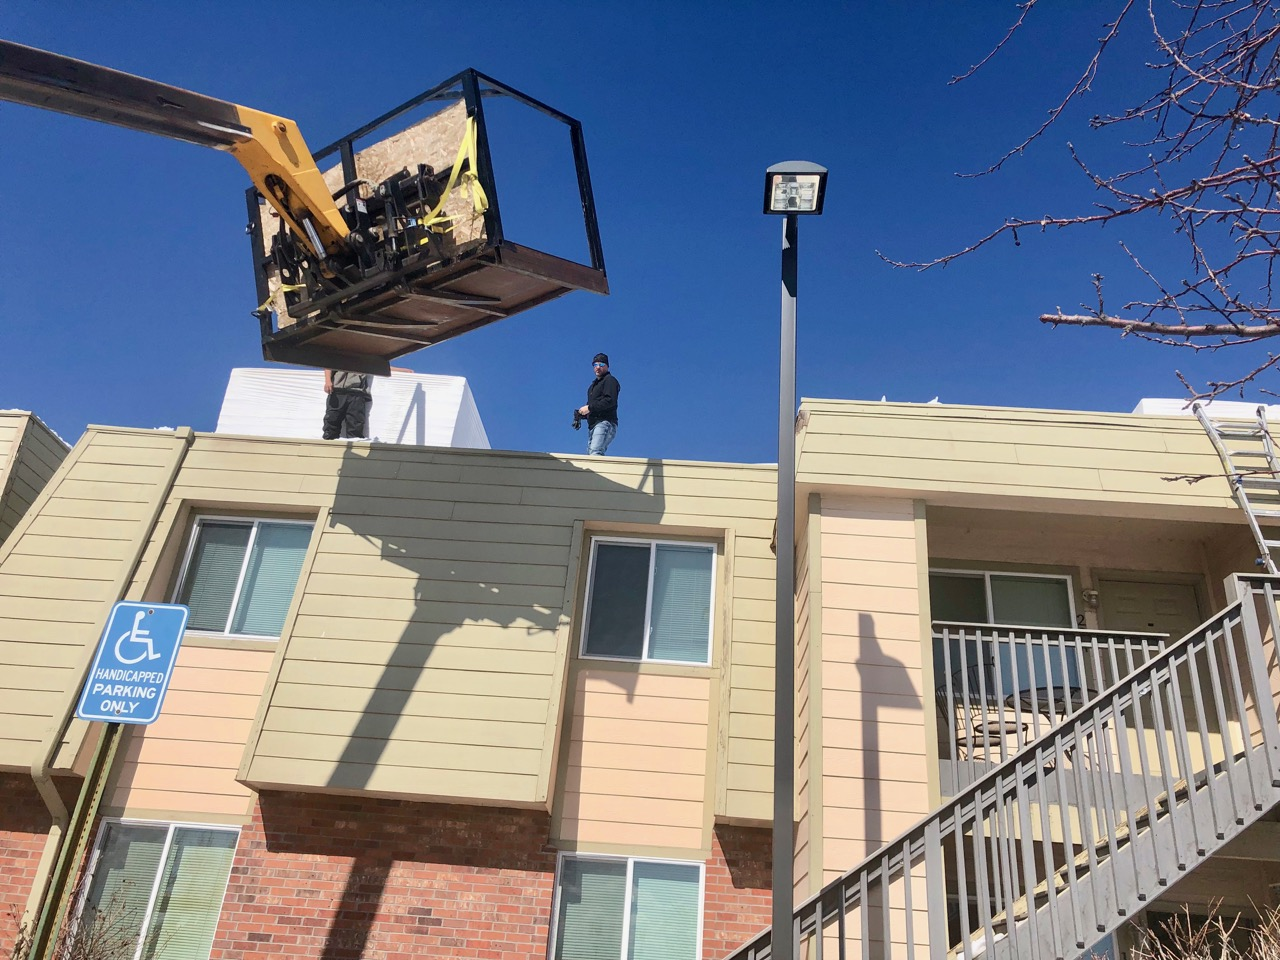 Roofing crew on top of McGeorge Mountain Terrace Apartments with snow blowers